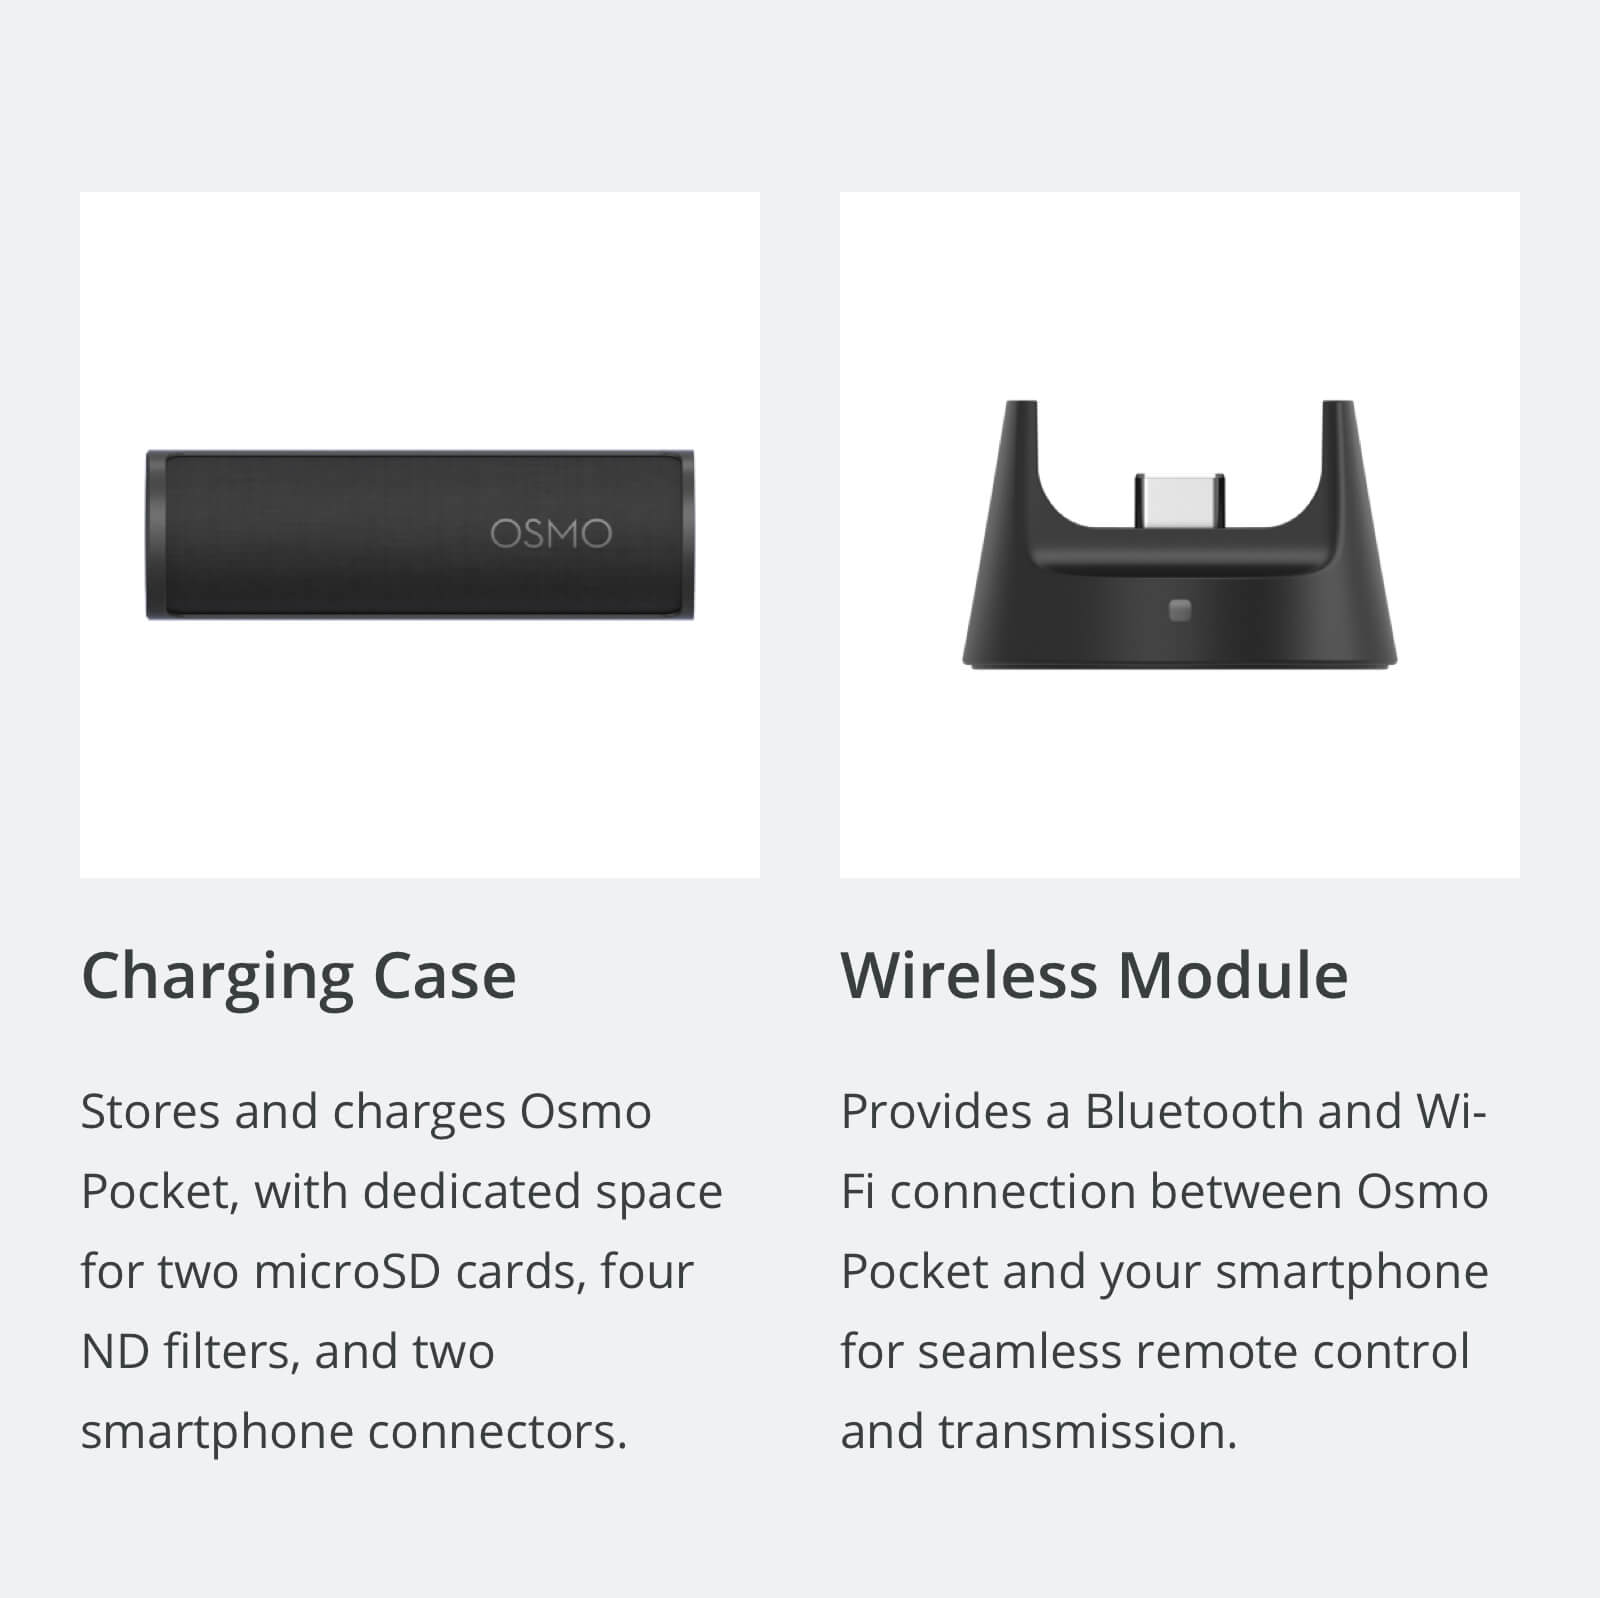 OSMO Pocket - Charging Case, Wireless